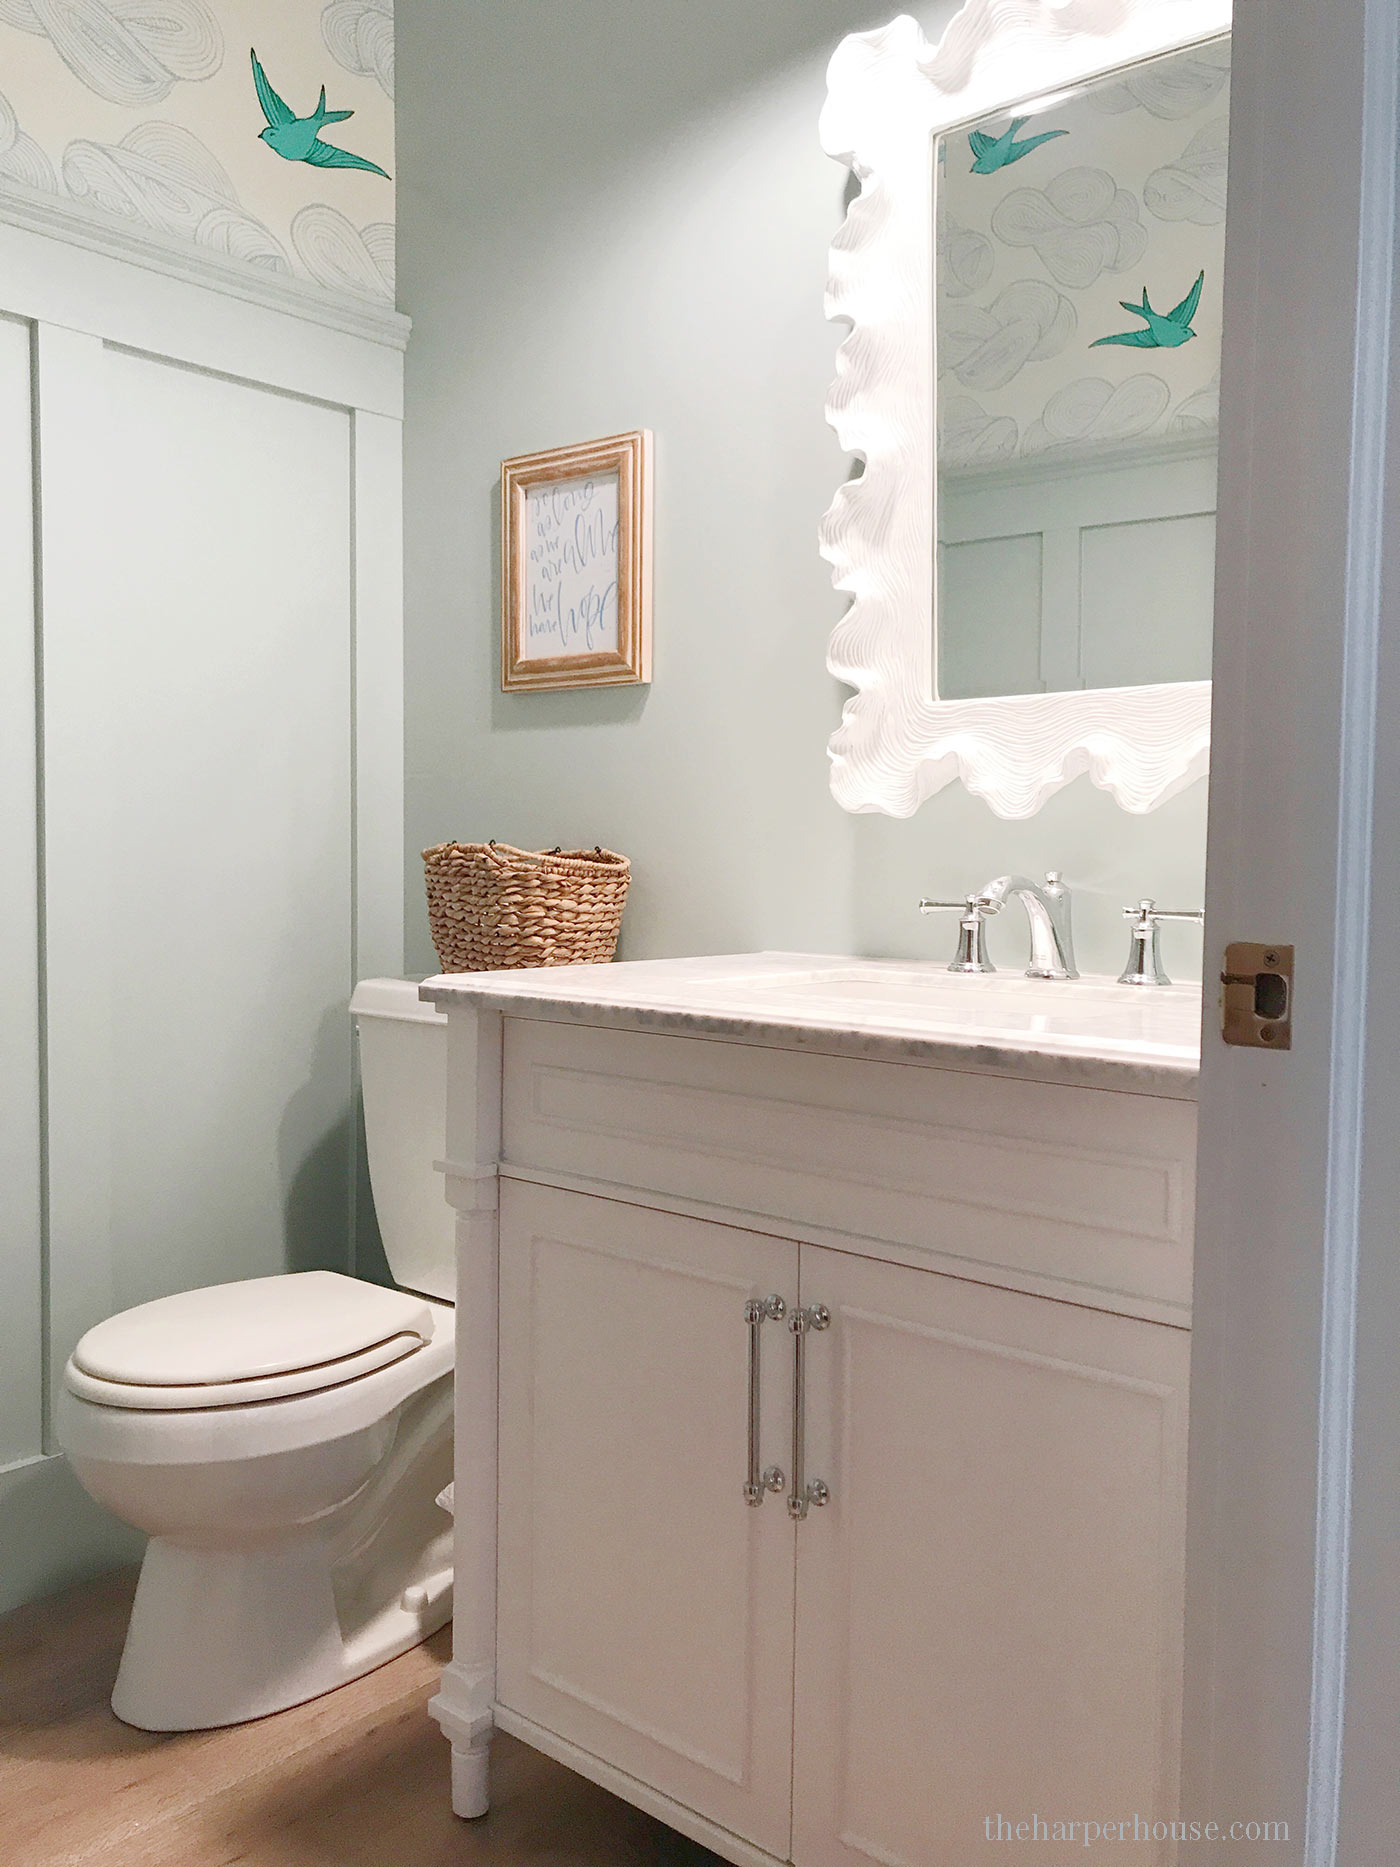 Find out where to buy this bathroom vanity for half the price of custom vanities! Get the look for less and save money with budget friendly bathroom design ideas. Bathroom Vanities Single Sink | Bathroom Decorating Ideas | Bathroom Remodeling Ideas | Farmhouse Bathroom | Bathroom Cabinets #bathroomidea #bathroomdesigns #bathroomdecor #bathroomremodel